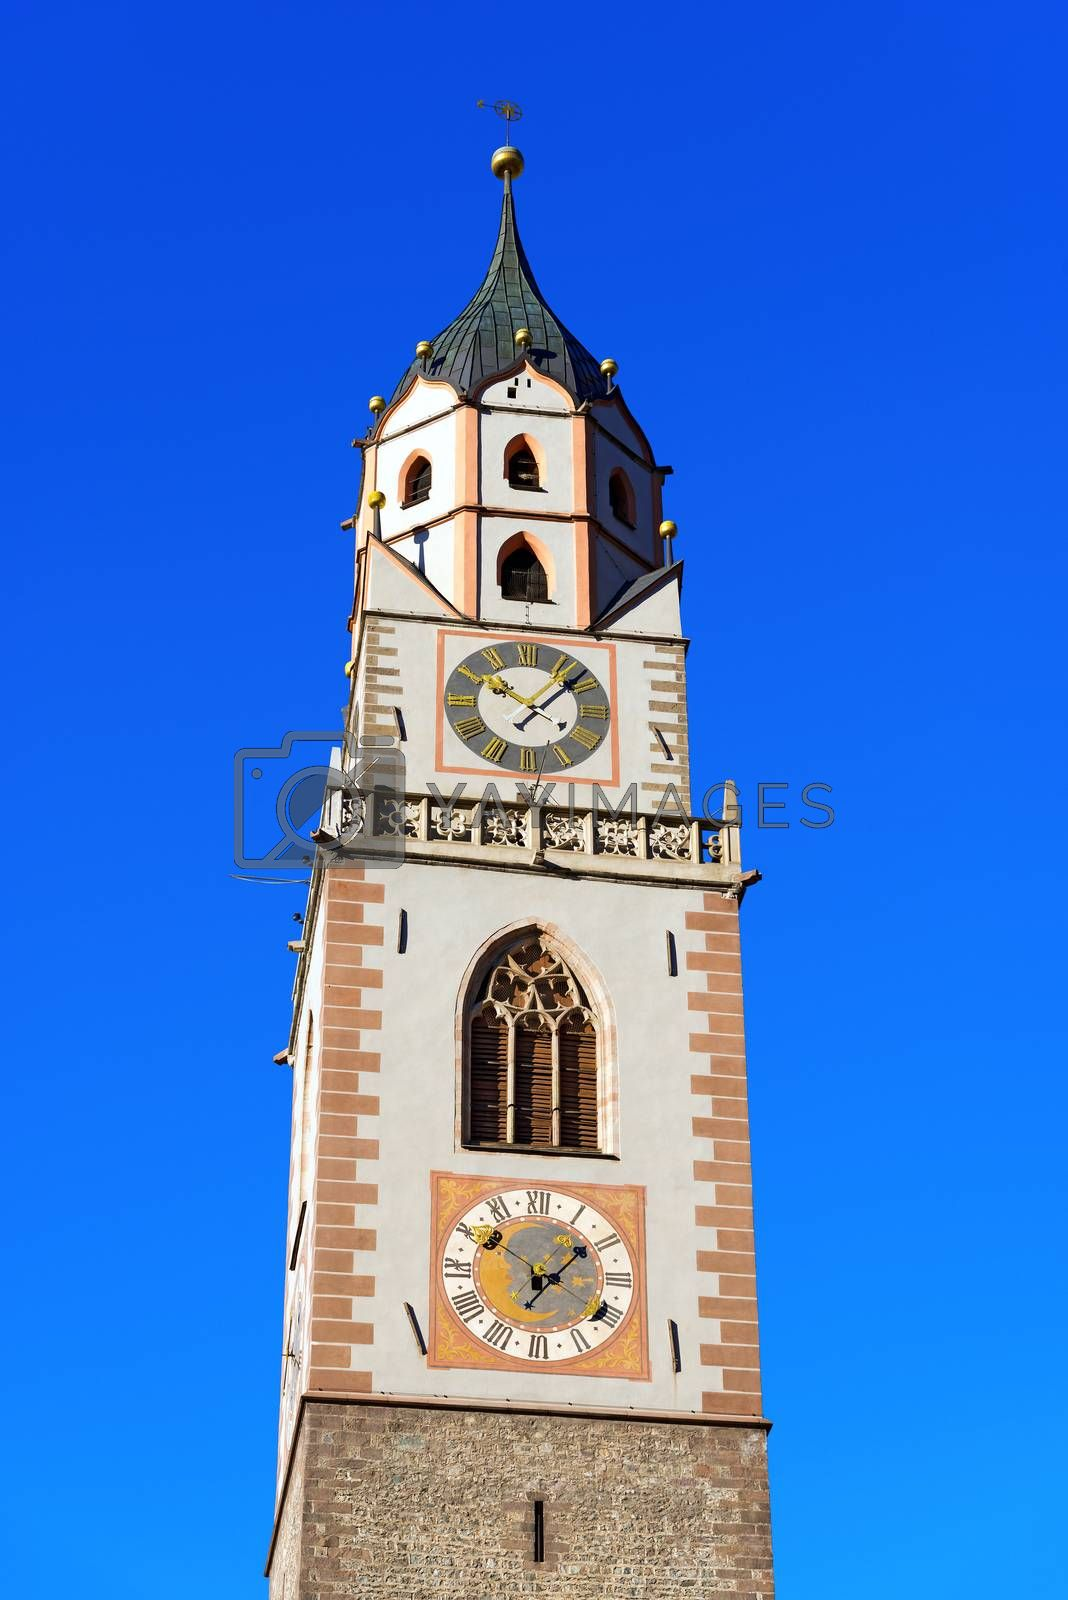 Detail of the bell tower of the Cathedral of St. Nicholas (1302-1465) in Merano, Bolzano, Trentino Alto Adige, Italy